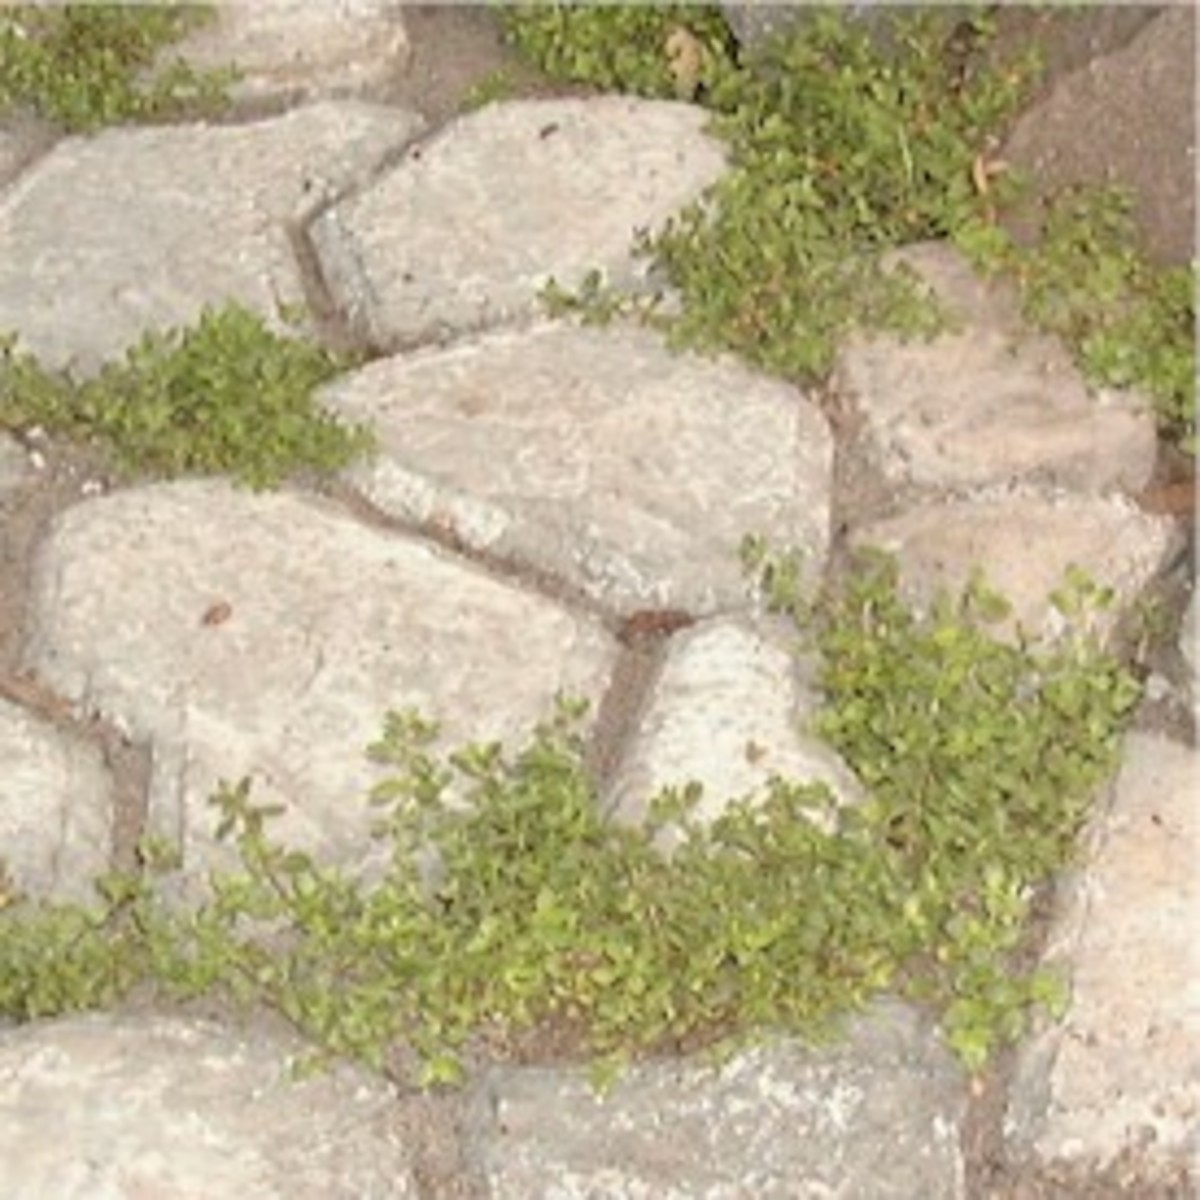 Creeping thyme growning between rocks